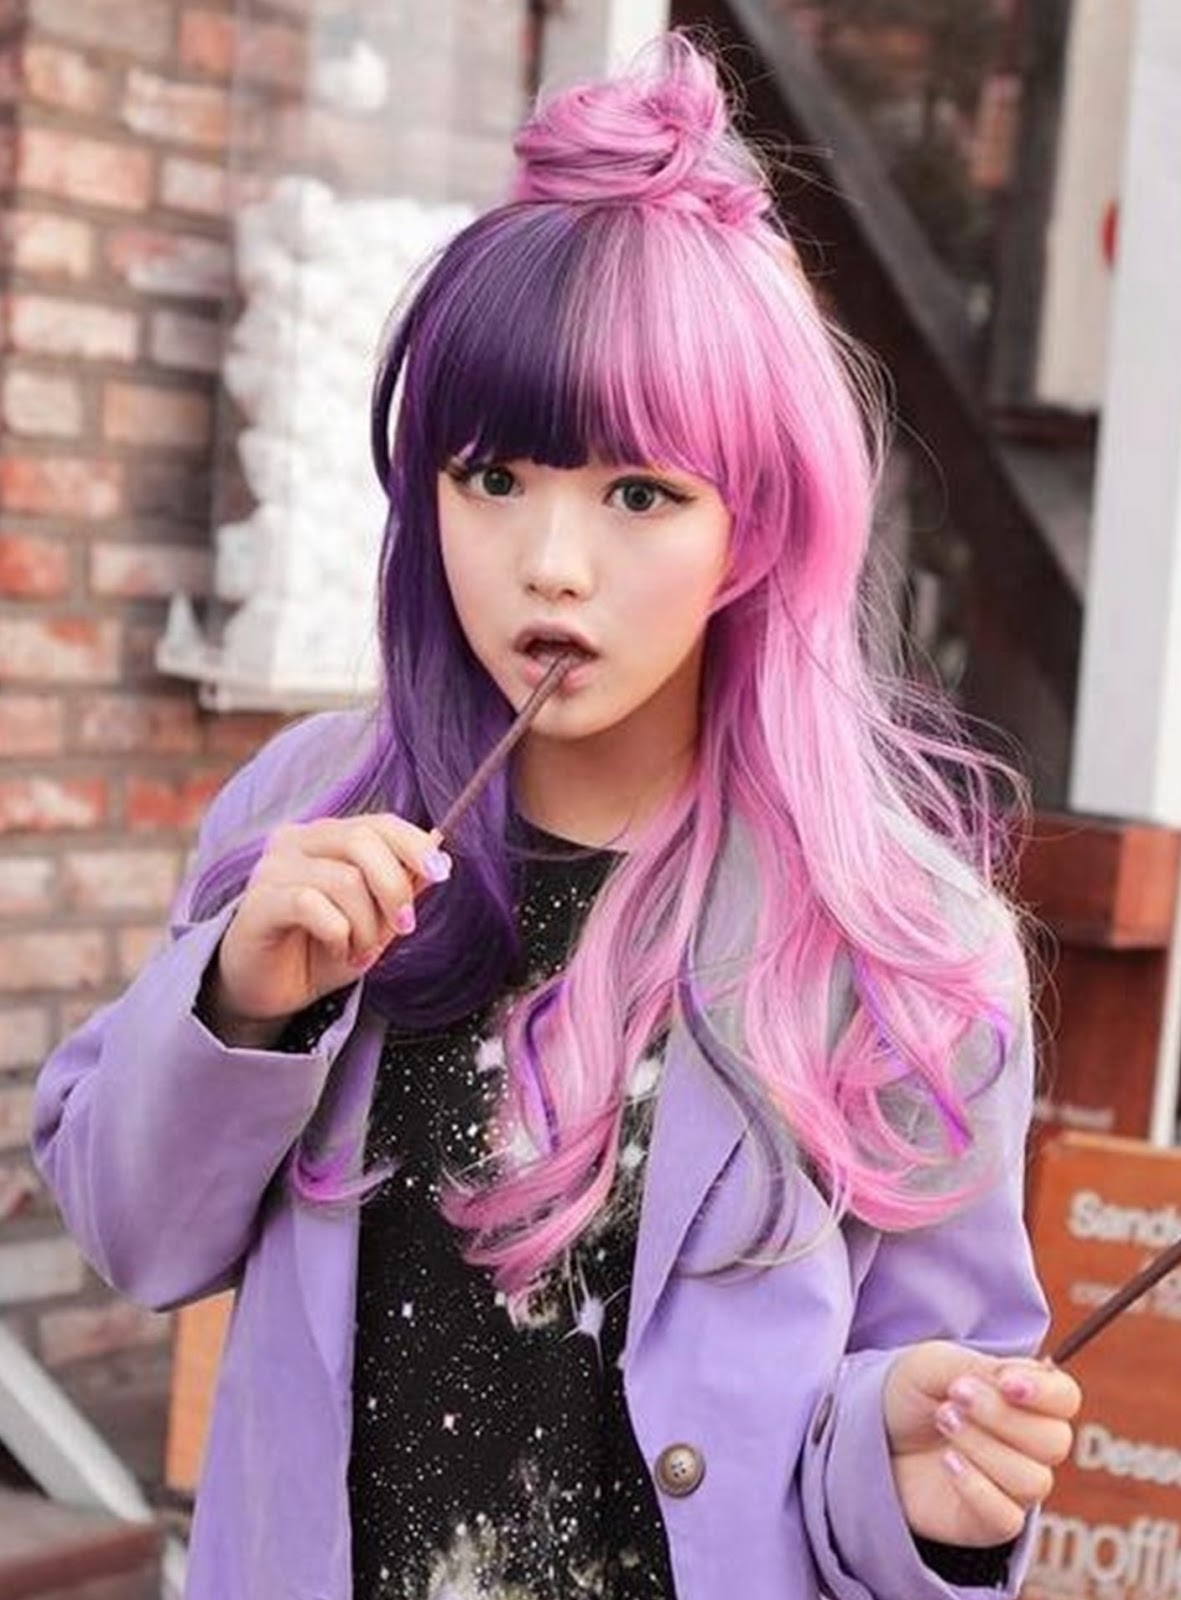 New Hairstyle Hairpunk: Fashions Harajuku Asian Girls Long Hairstyle intended for Asian Girl Long Hairstyles